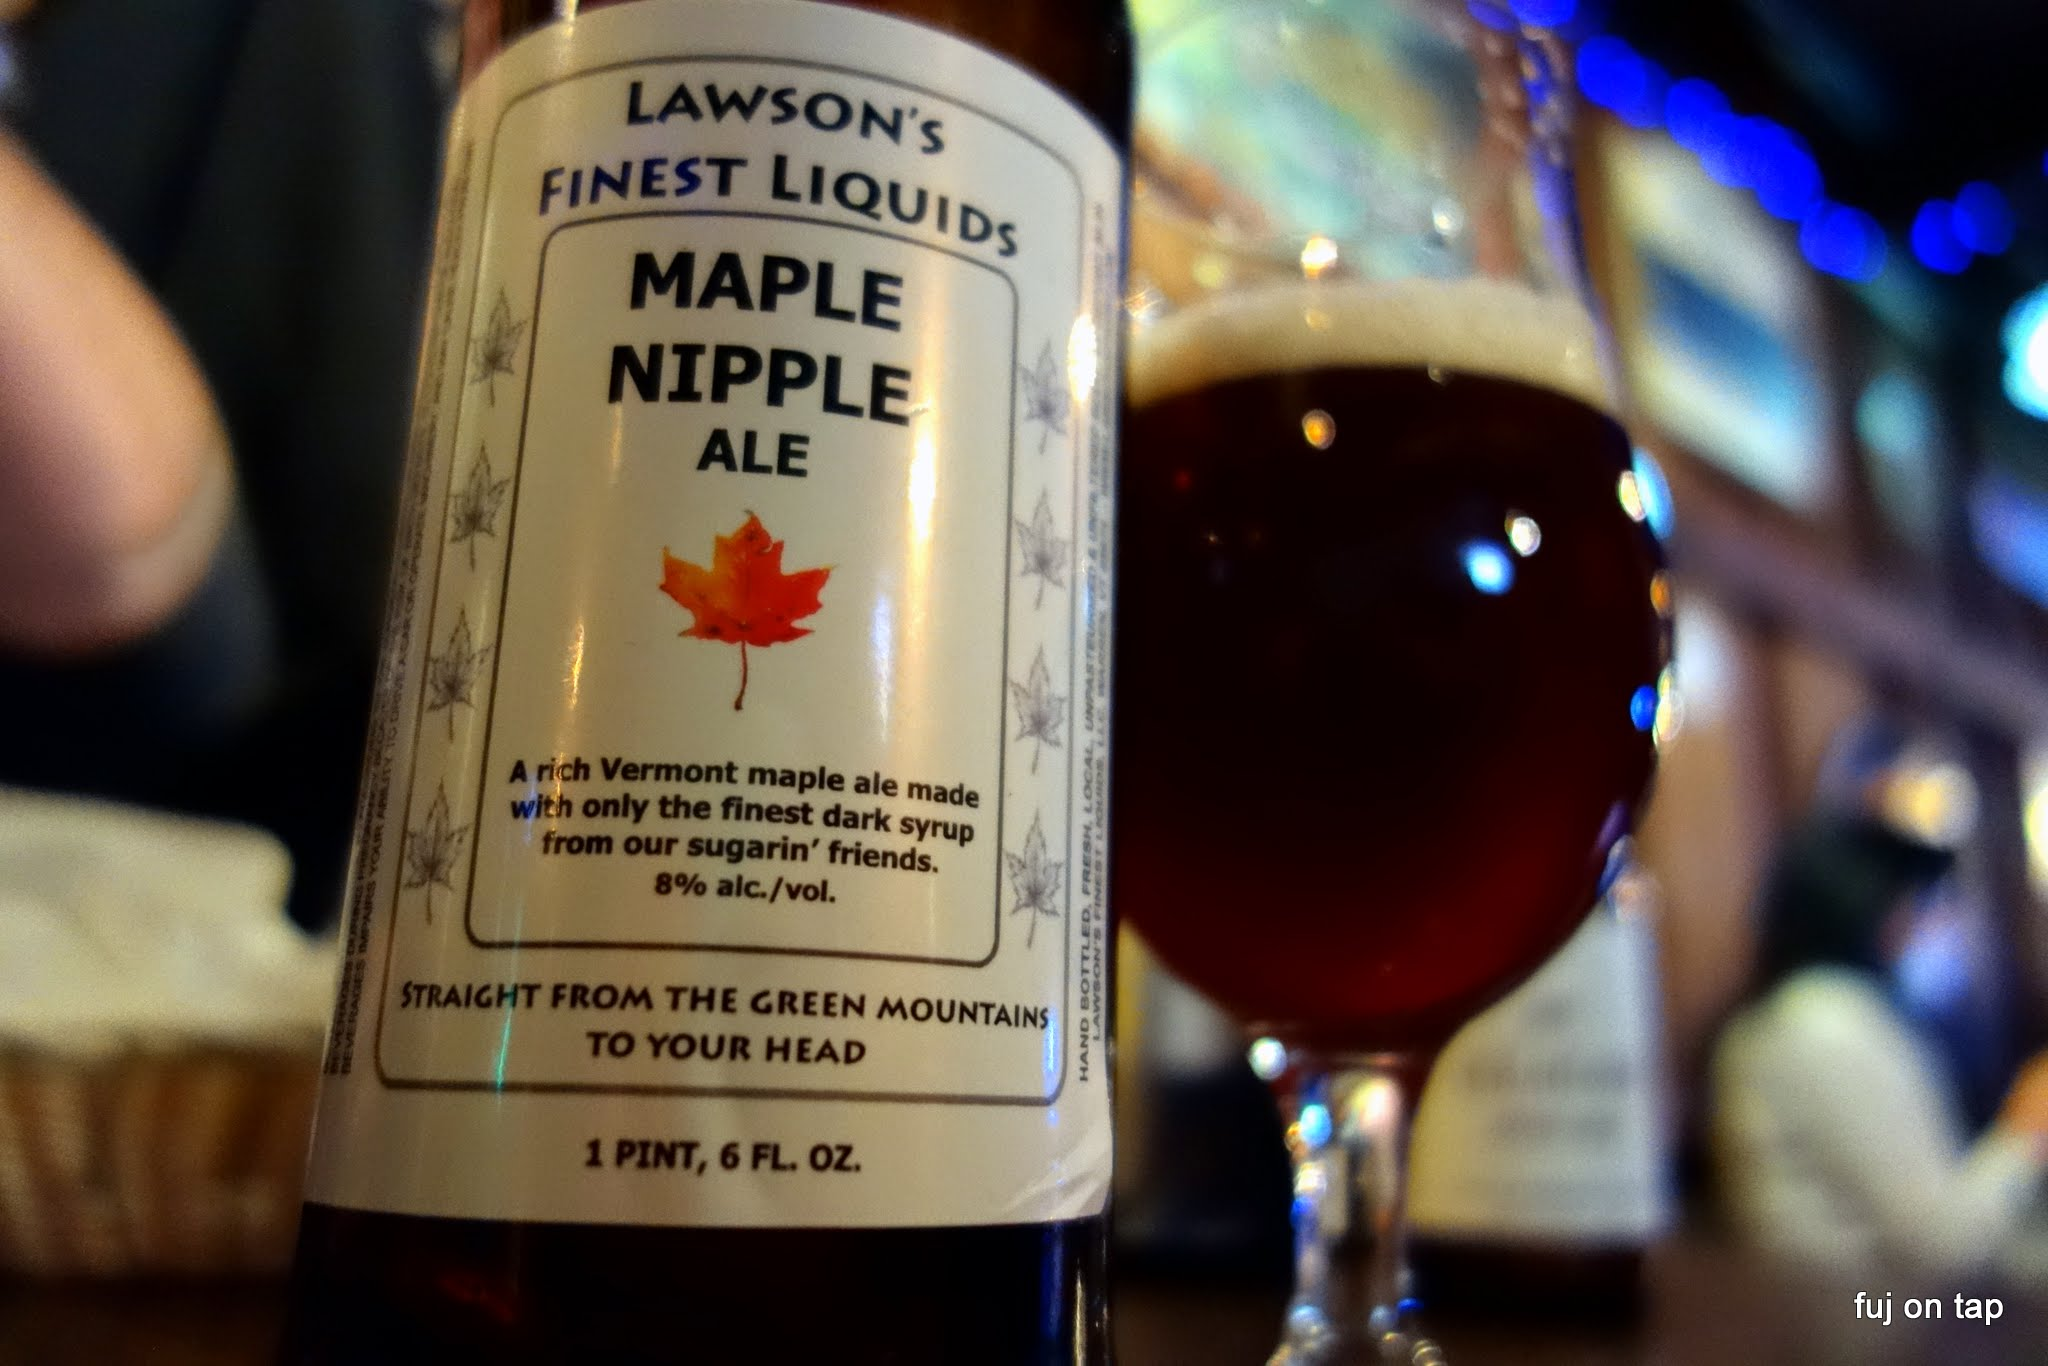 Lawson's Finest Maple Nipple